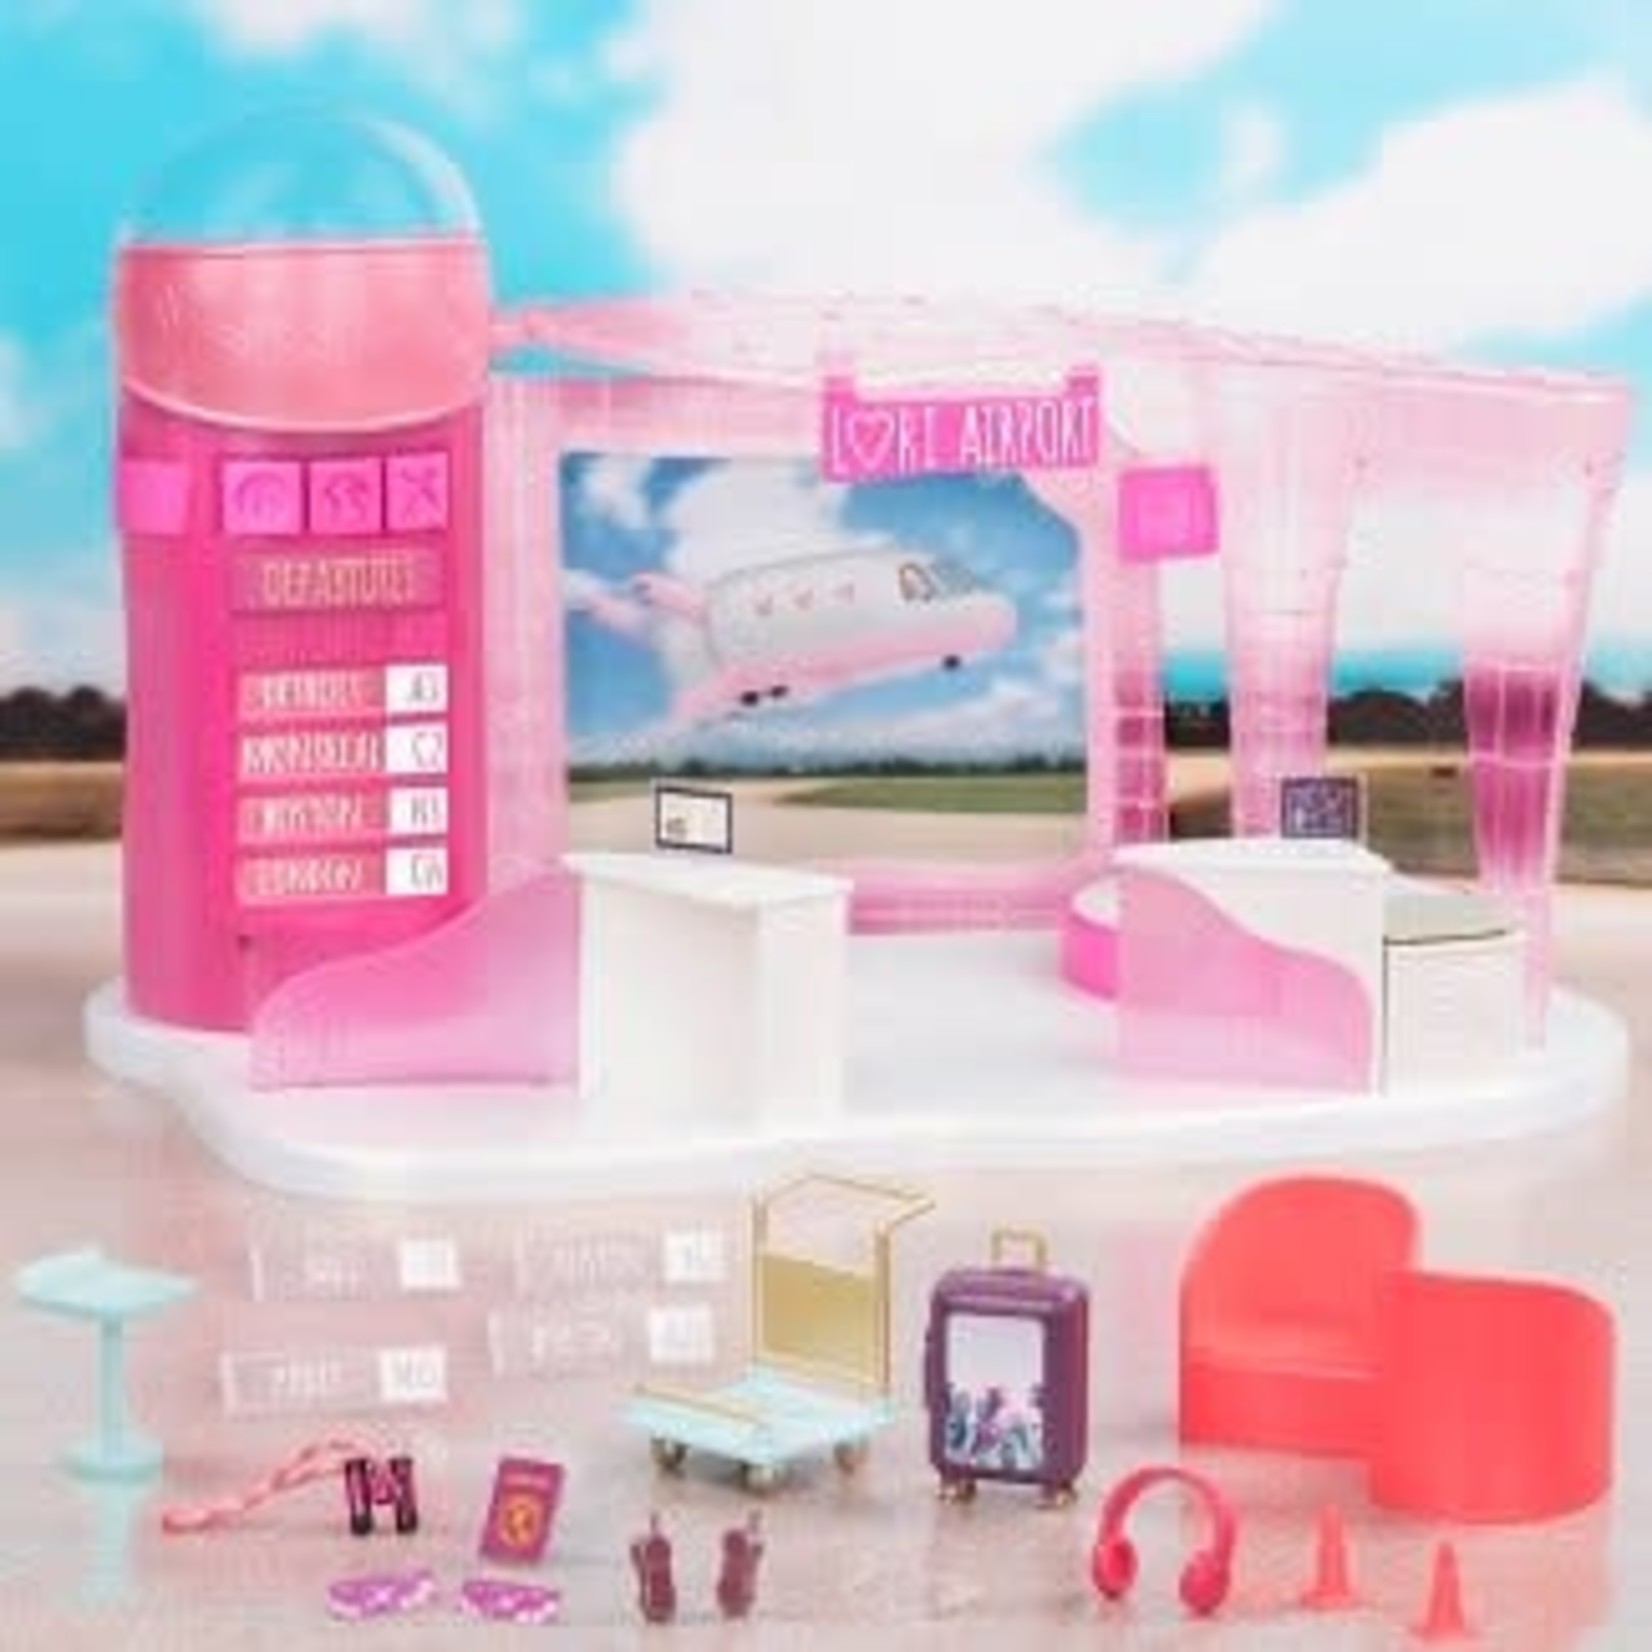 Lori Dolls Jetset Airways - Airport for 6-in Dolls *Open box, missing packaging